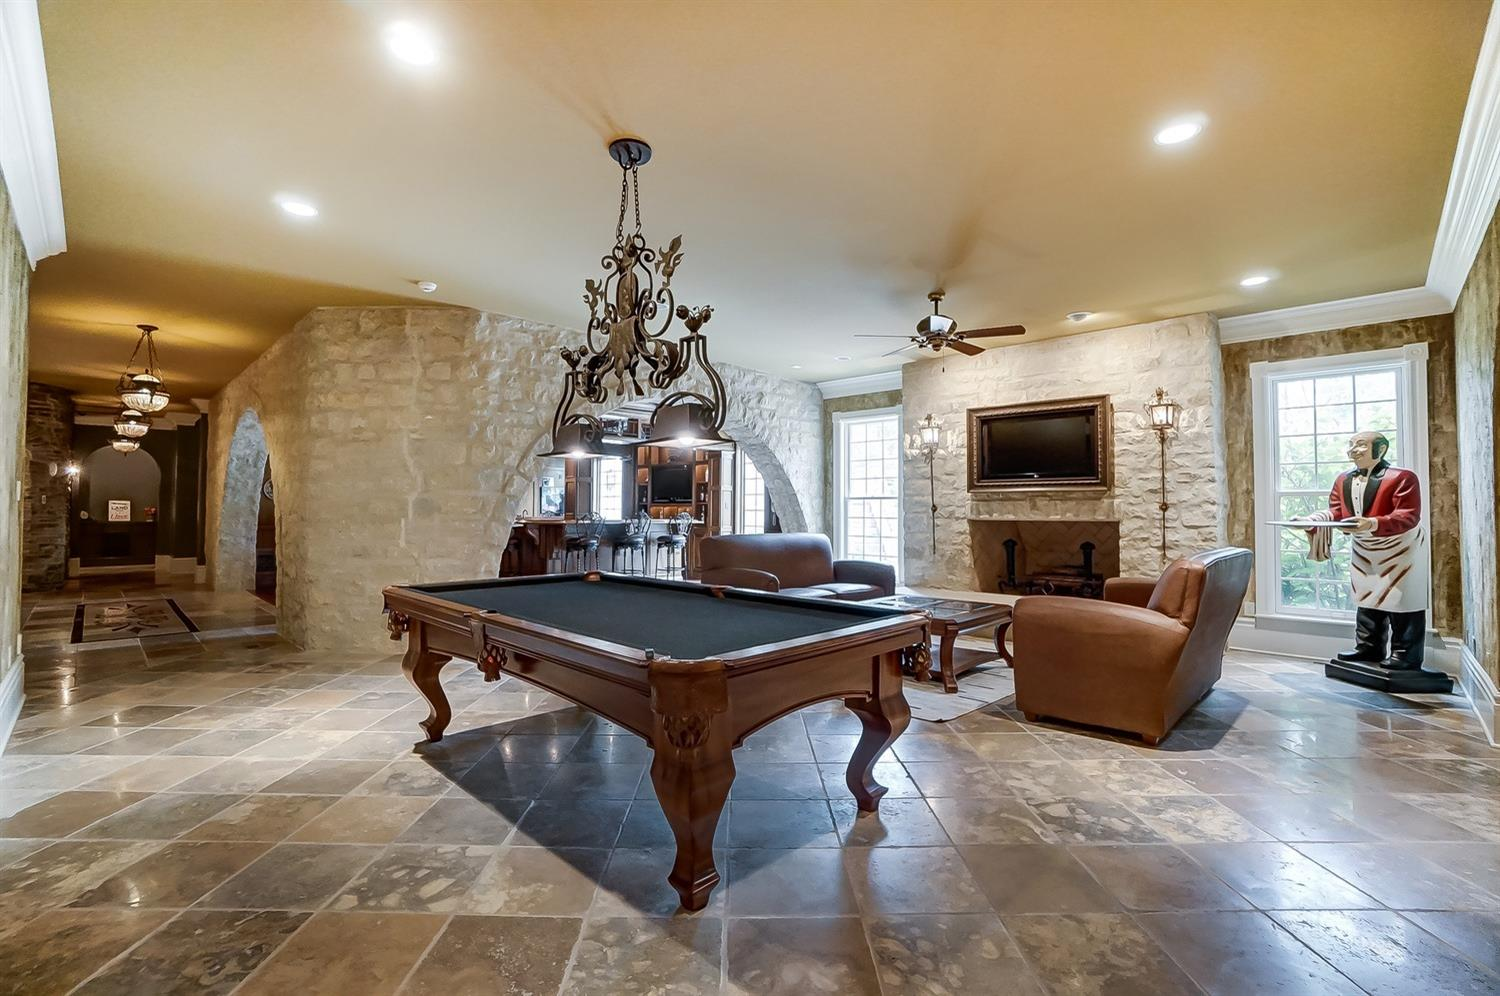 Adjacent to the tavern is the lounge room with a billiard table and large stone wood-burning fireplace with a raised limestone hearth.